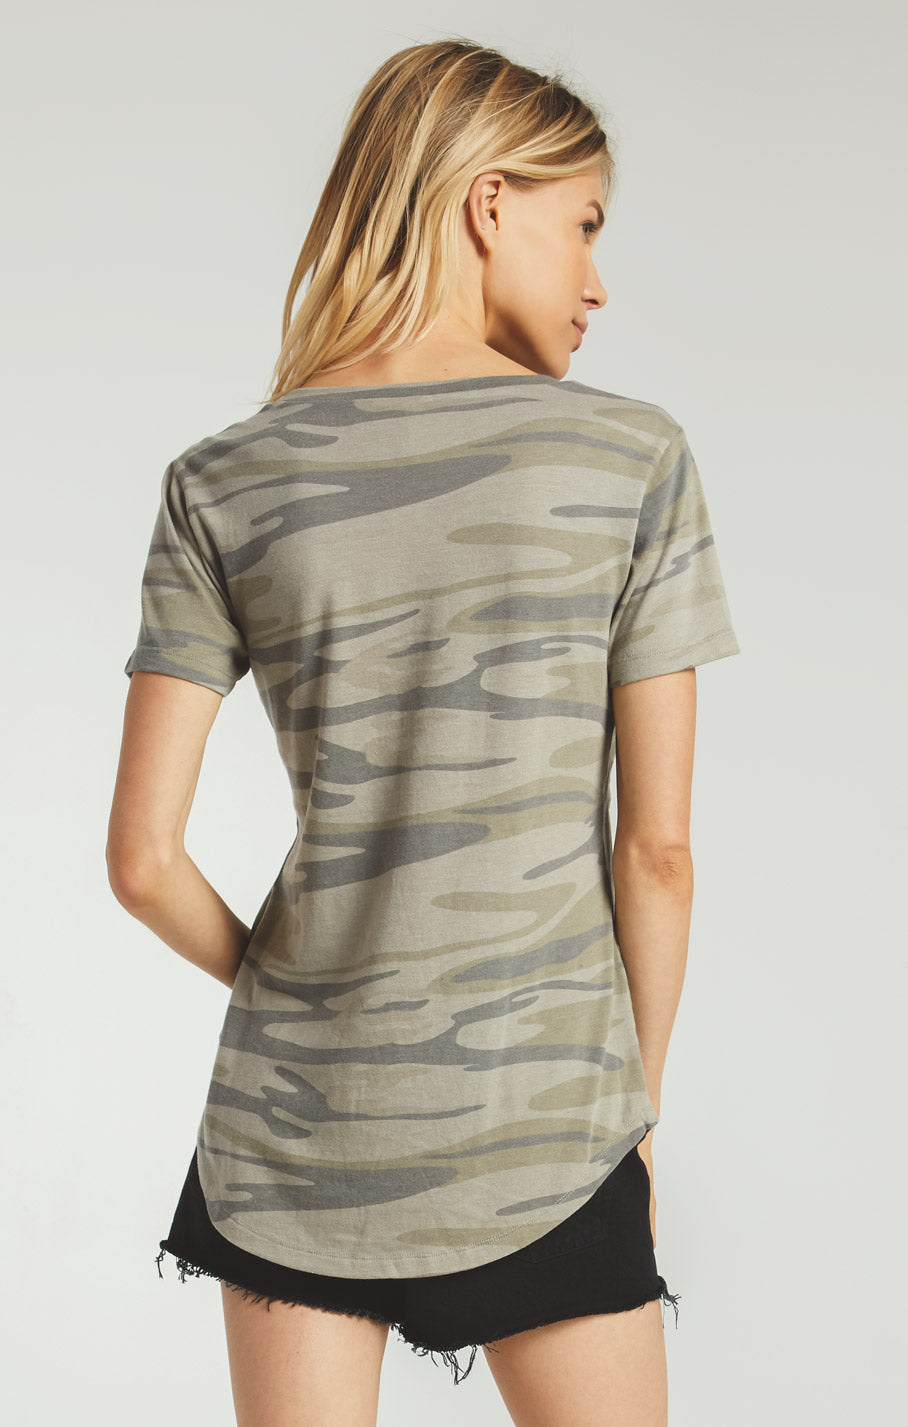 Tops Camo Pocket Tee Camo Light Sage